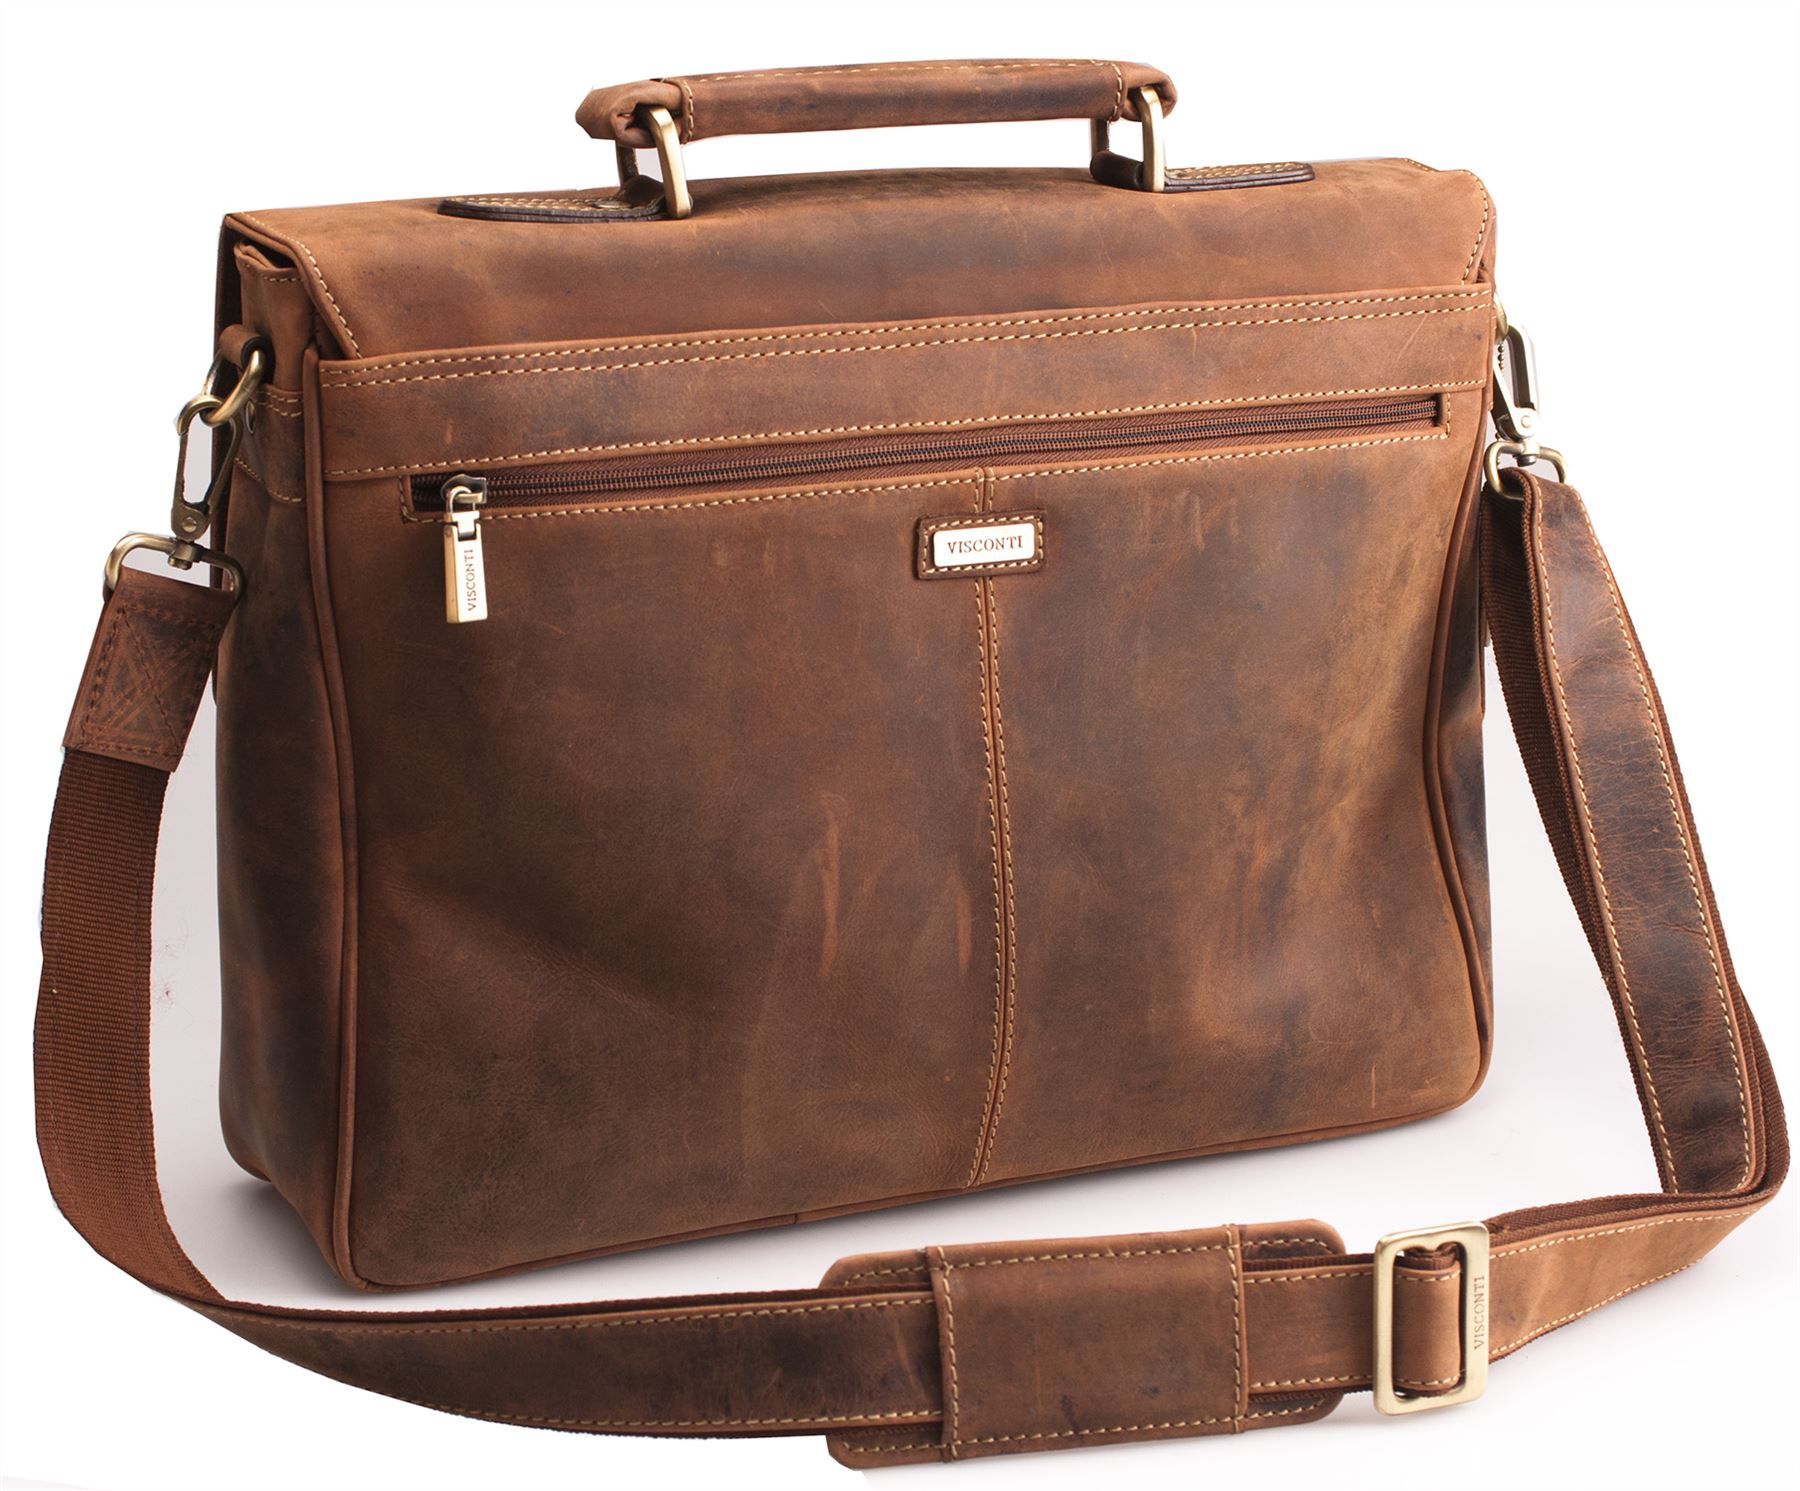 Men's Messenger Bag Leather Waterproof Waxed Canvas Laptop Satchel Shoulder Briefcase $ 49 99 Prime. out of 5 stars Jack&Chris. Men's Leather Briefcase Messenger Bag Laptop Crossbody Shoulder Bag,MBB $ 00 Prime. out of 5 stars Iswee.